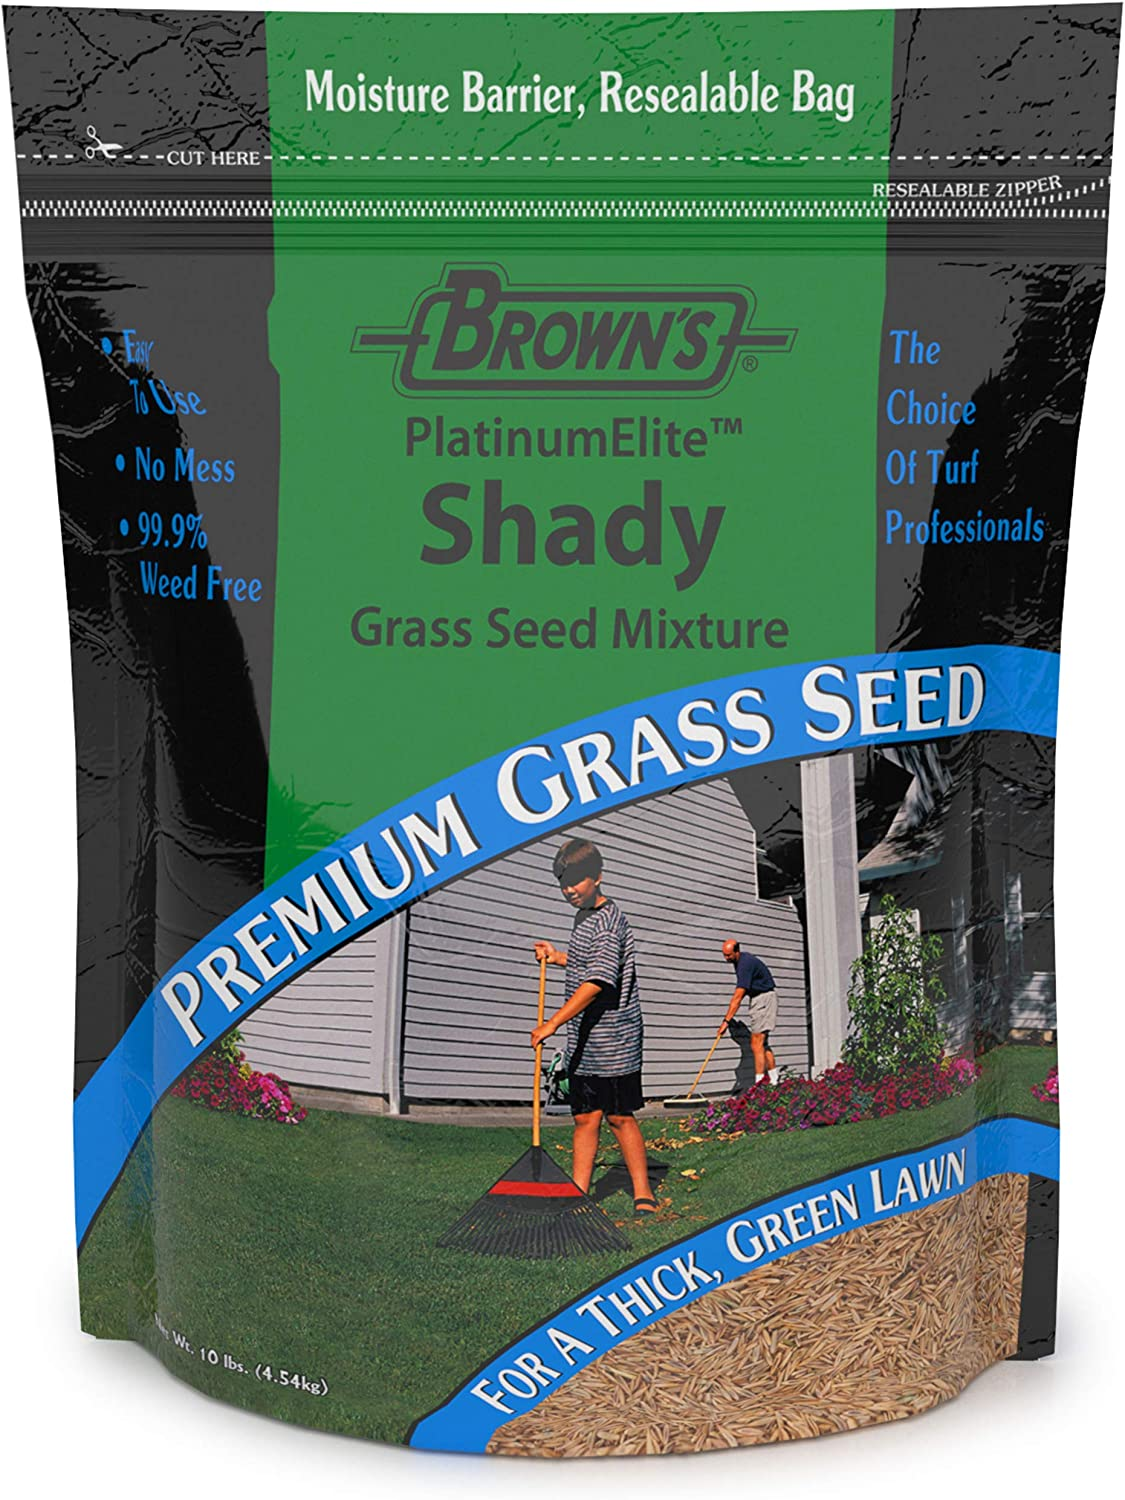 F.M. Brown's Platinum Elite Shady Grass Seed Mixture